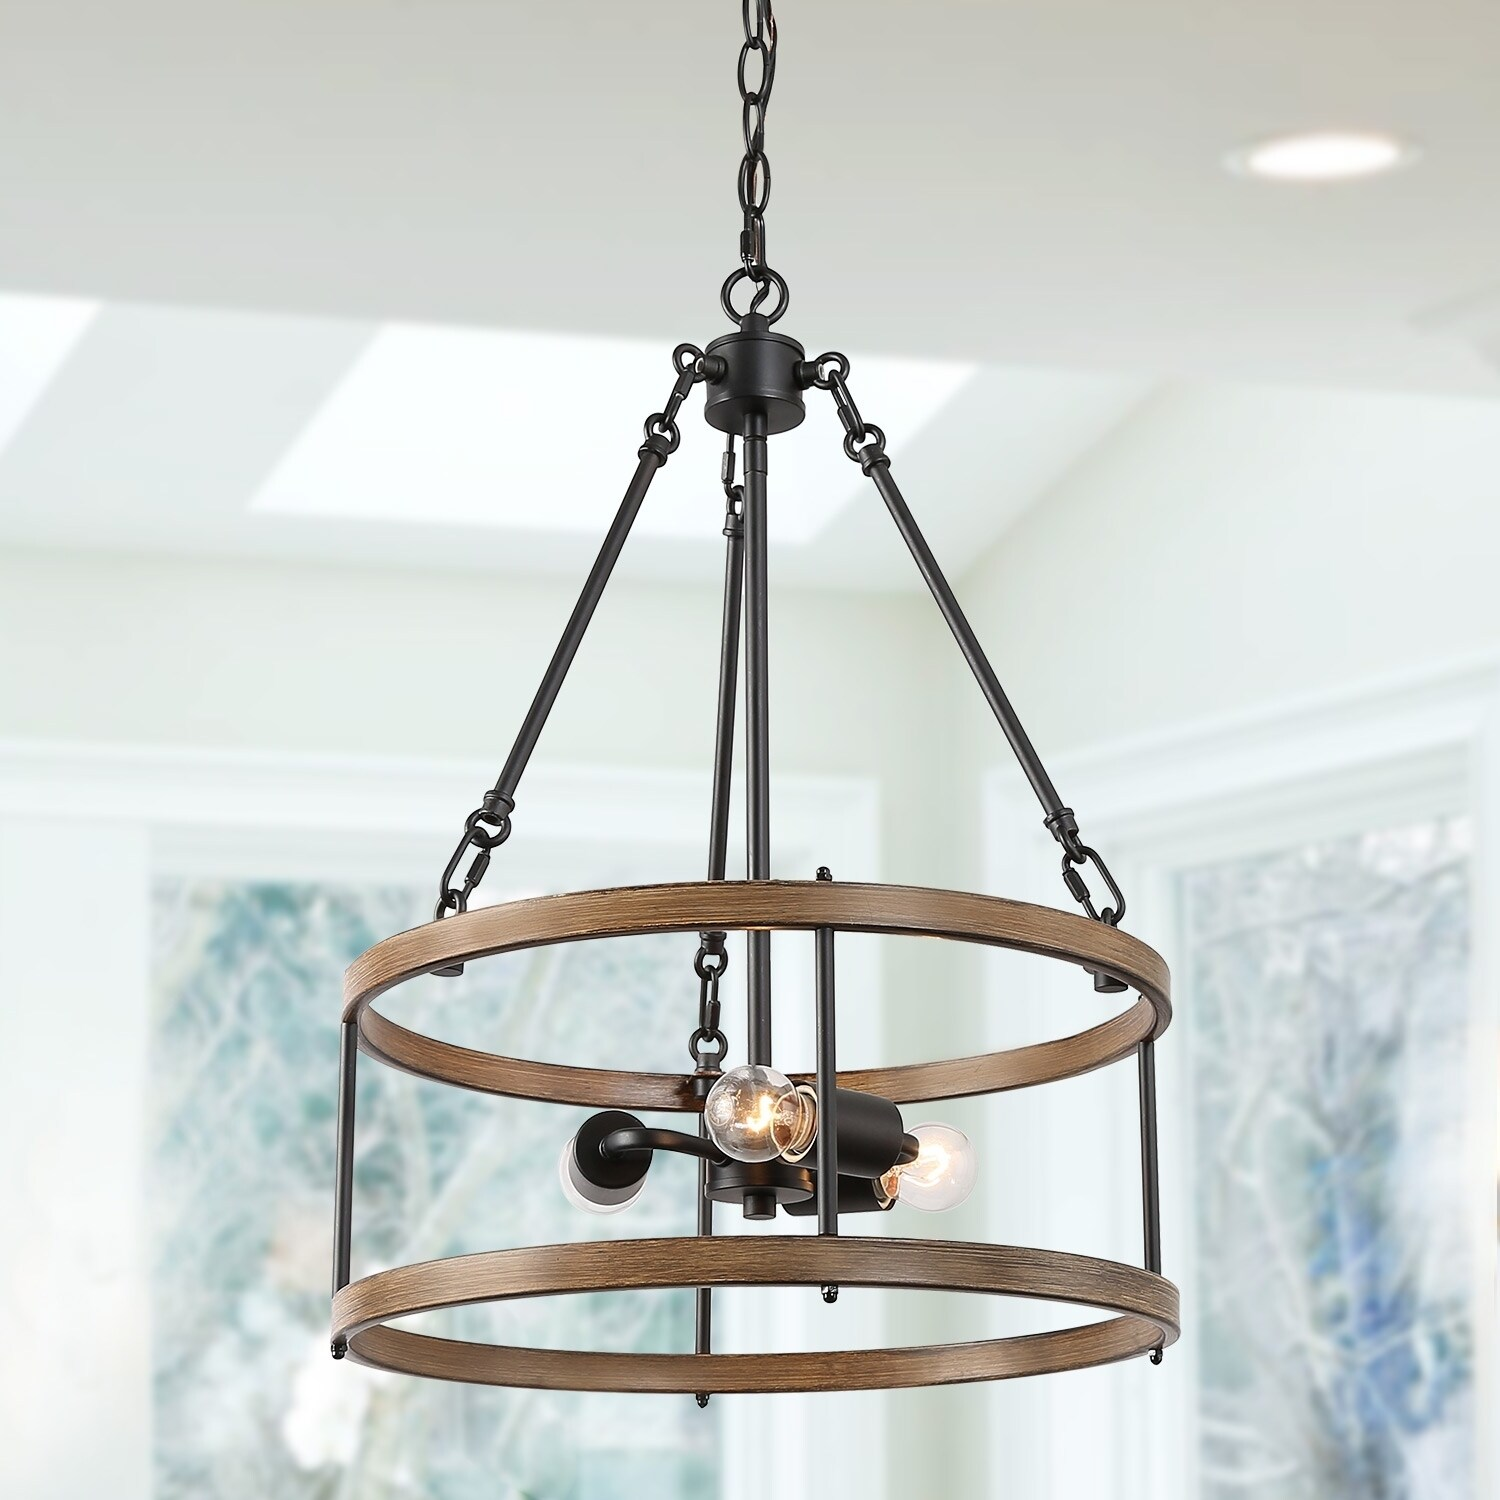 Farmhouse Kitchen Lighting With Drum Frame Mini Chnadelier N A